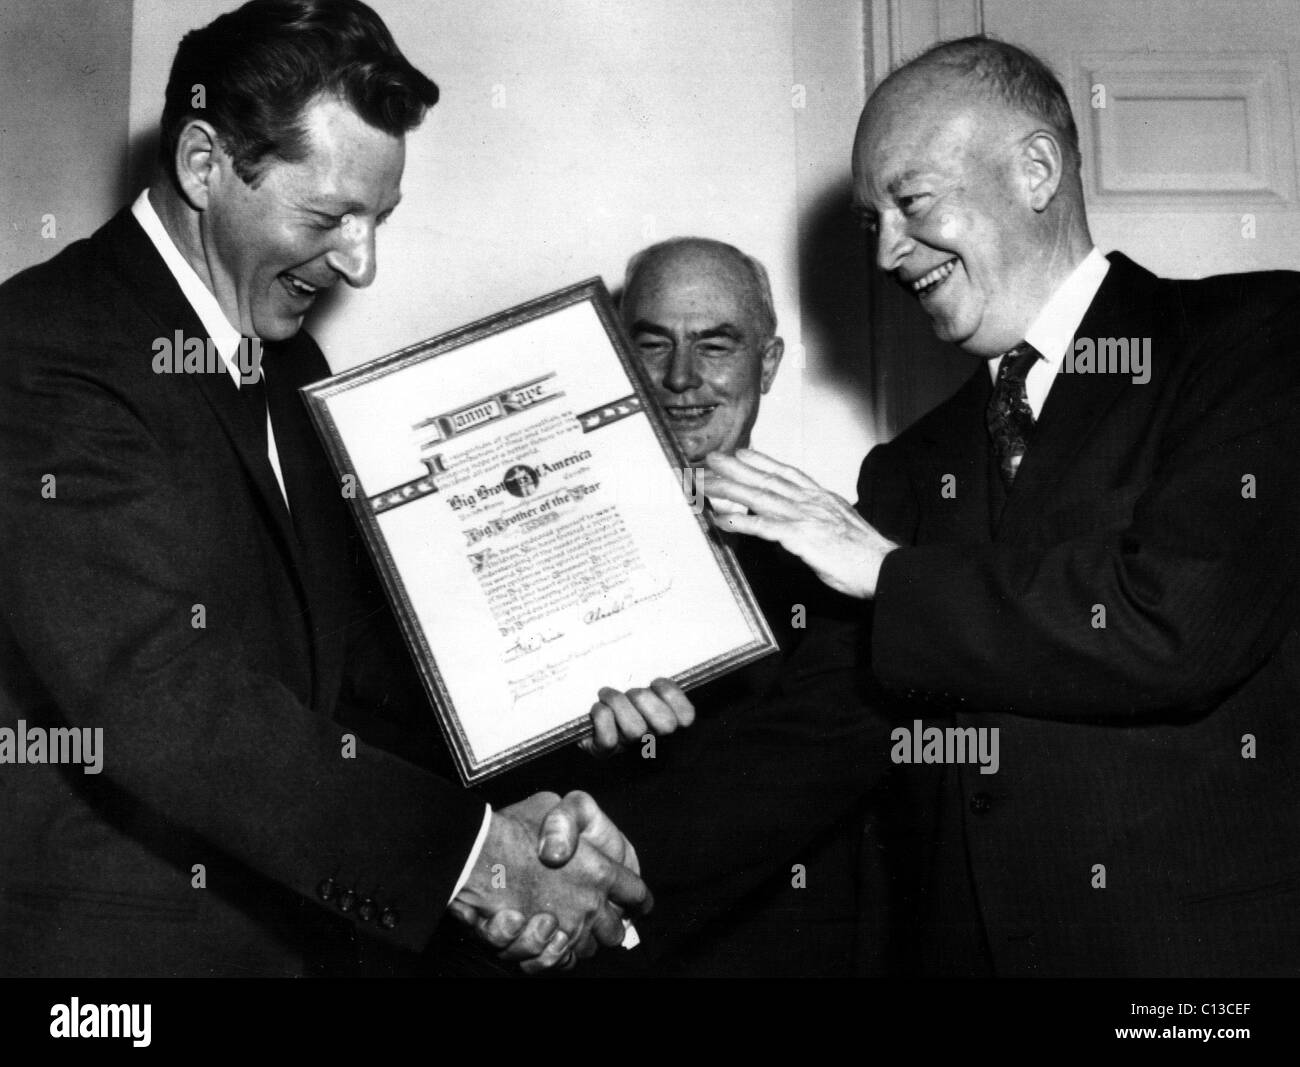 DANNY KAYE, named Big Brother of the Year, is congratualted at the White House by CHARLES BERWIND and President - Stock Image